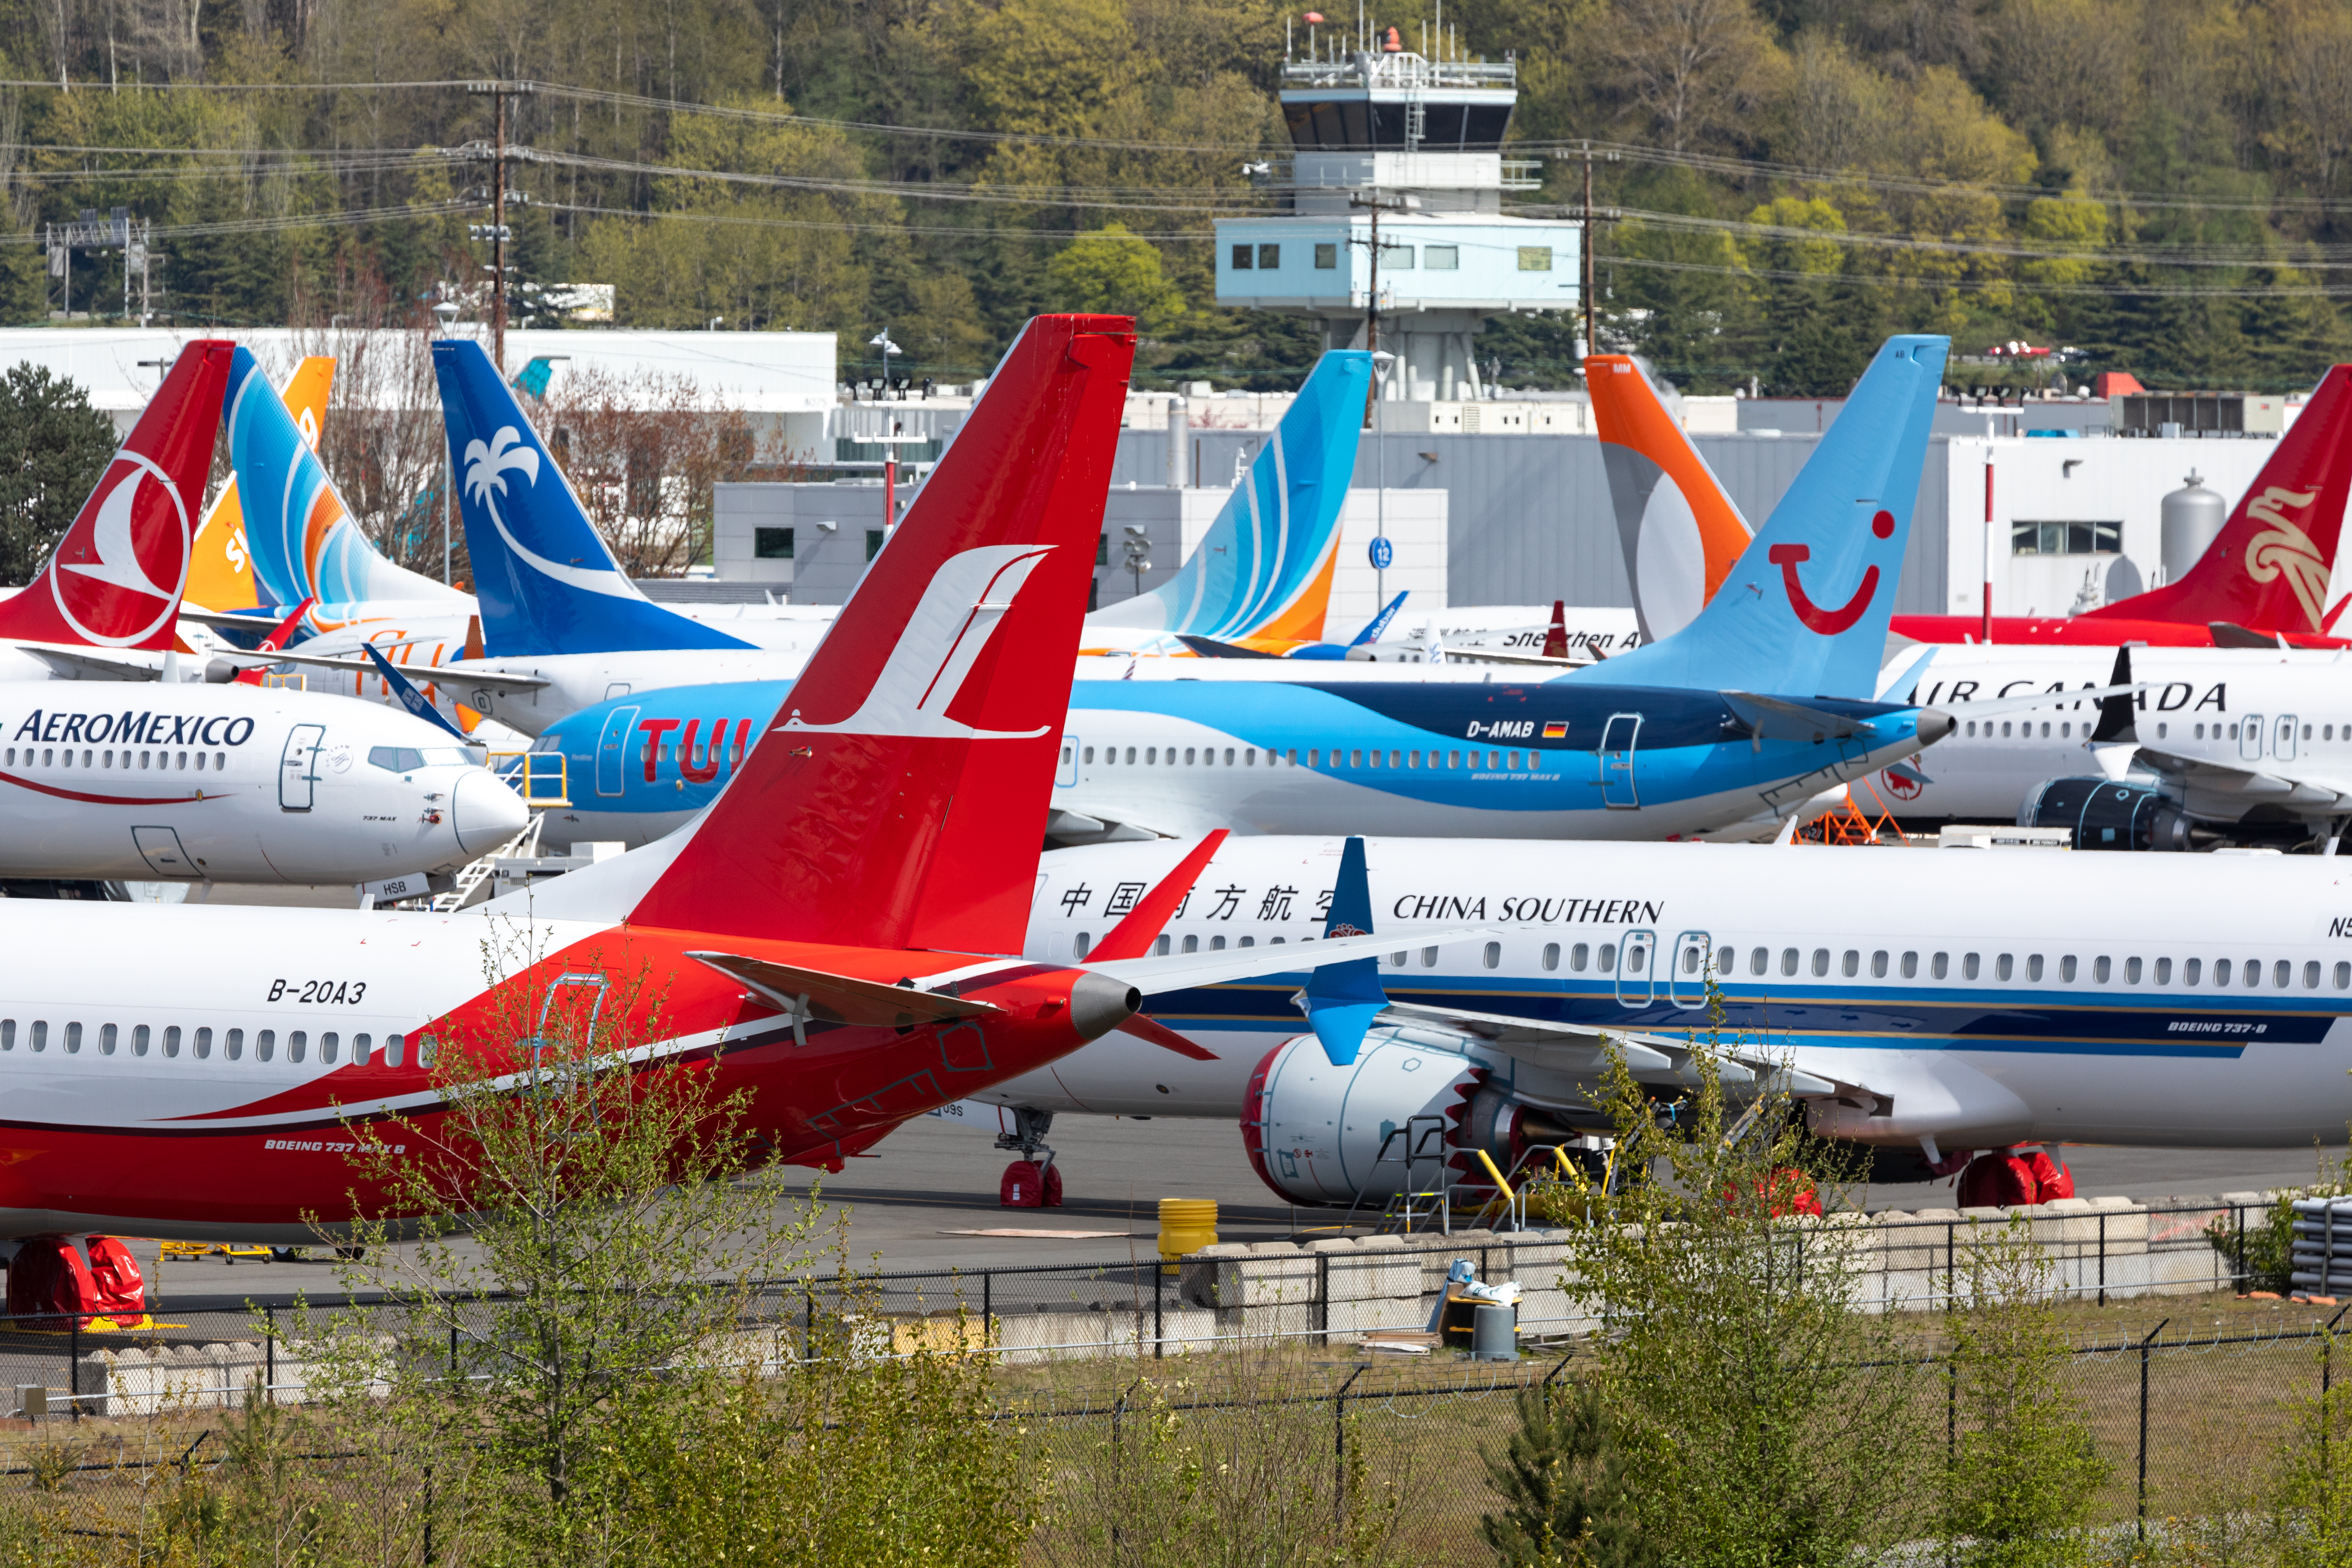 Boeing 737 Max to be inspected for foreign object debris prior to service return